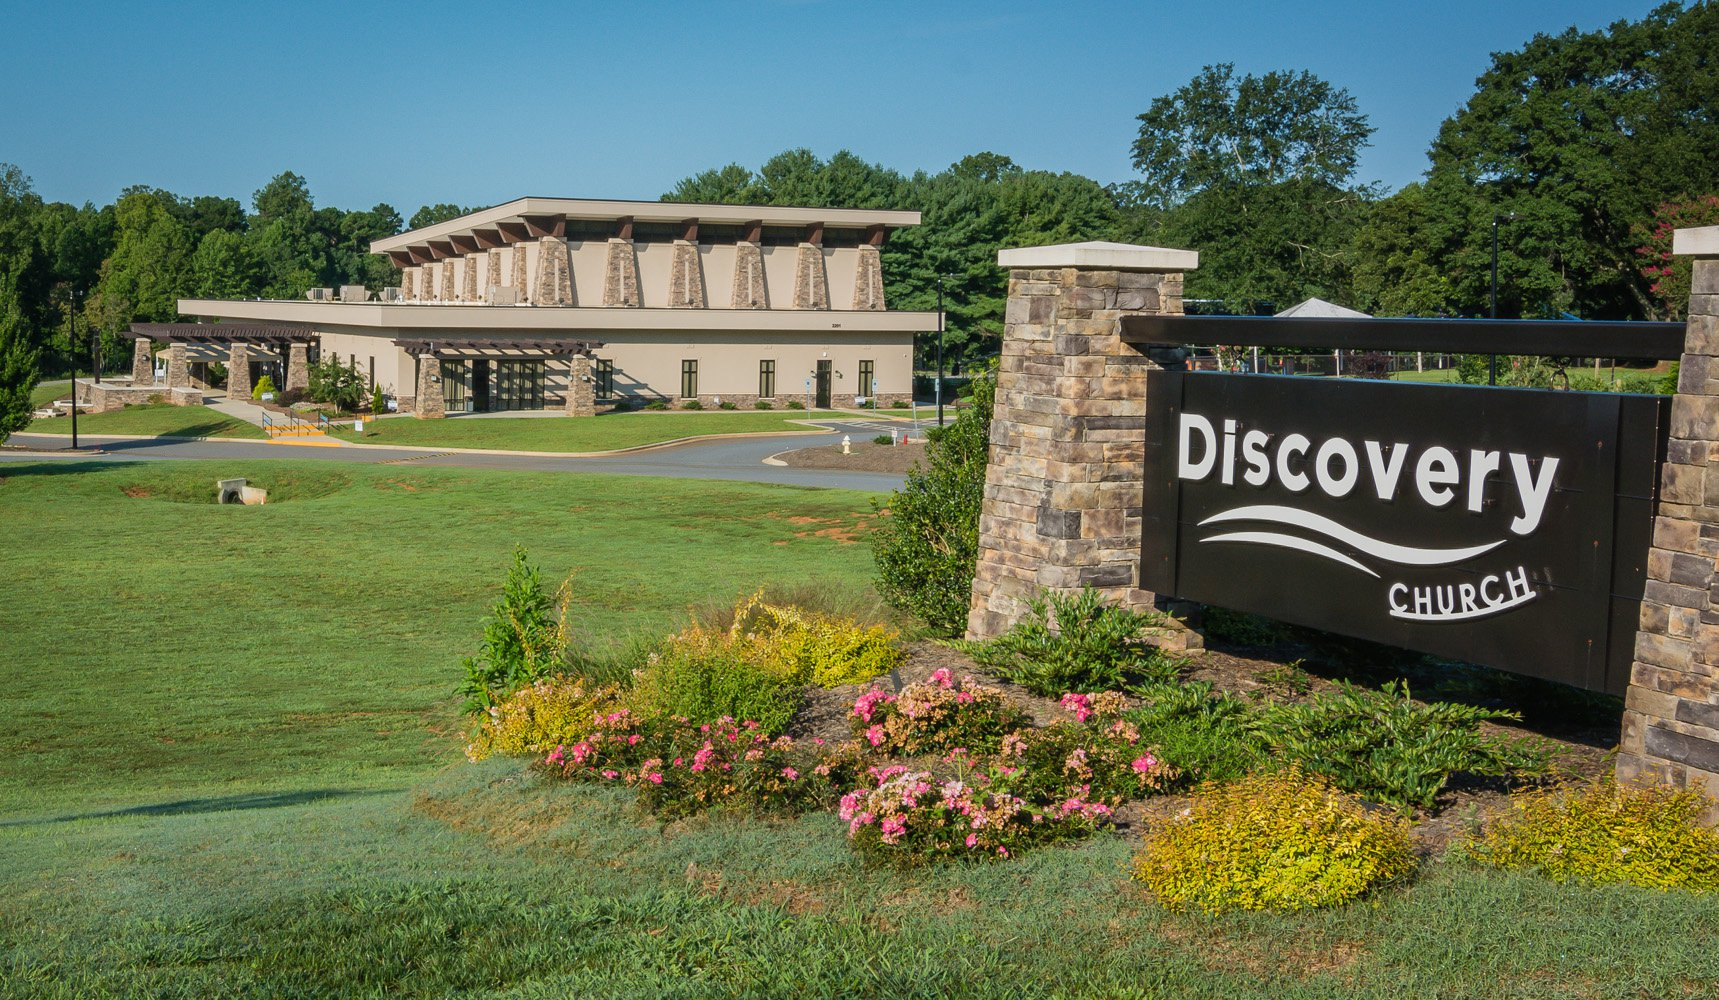 Discovery Church Exterior